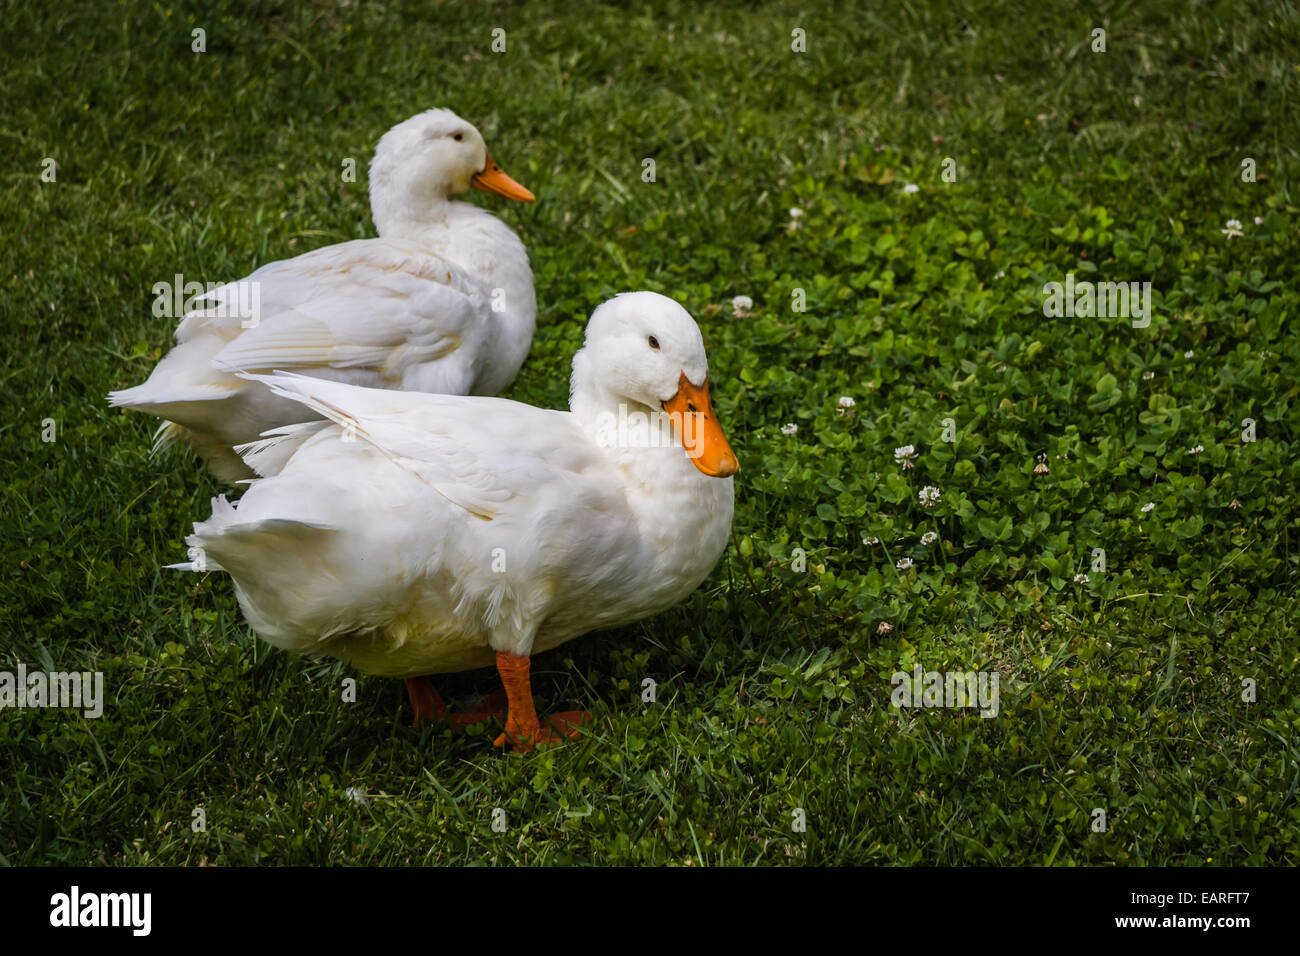 Two white ducks on the wild green grass - Stock Image